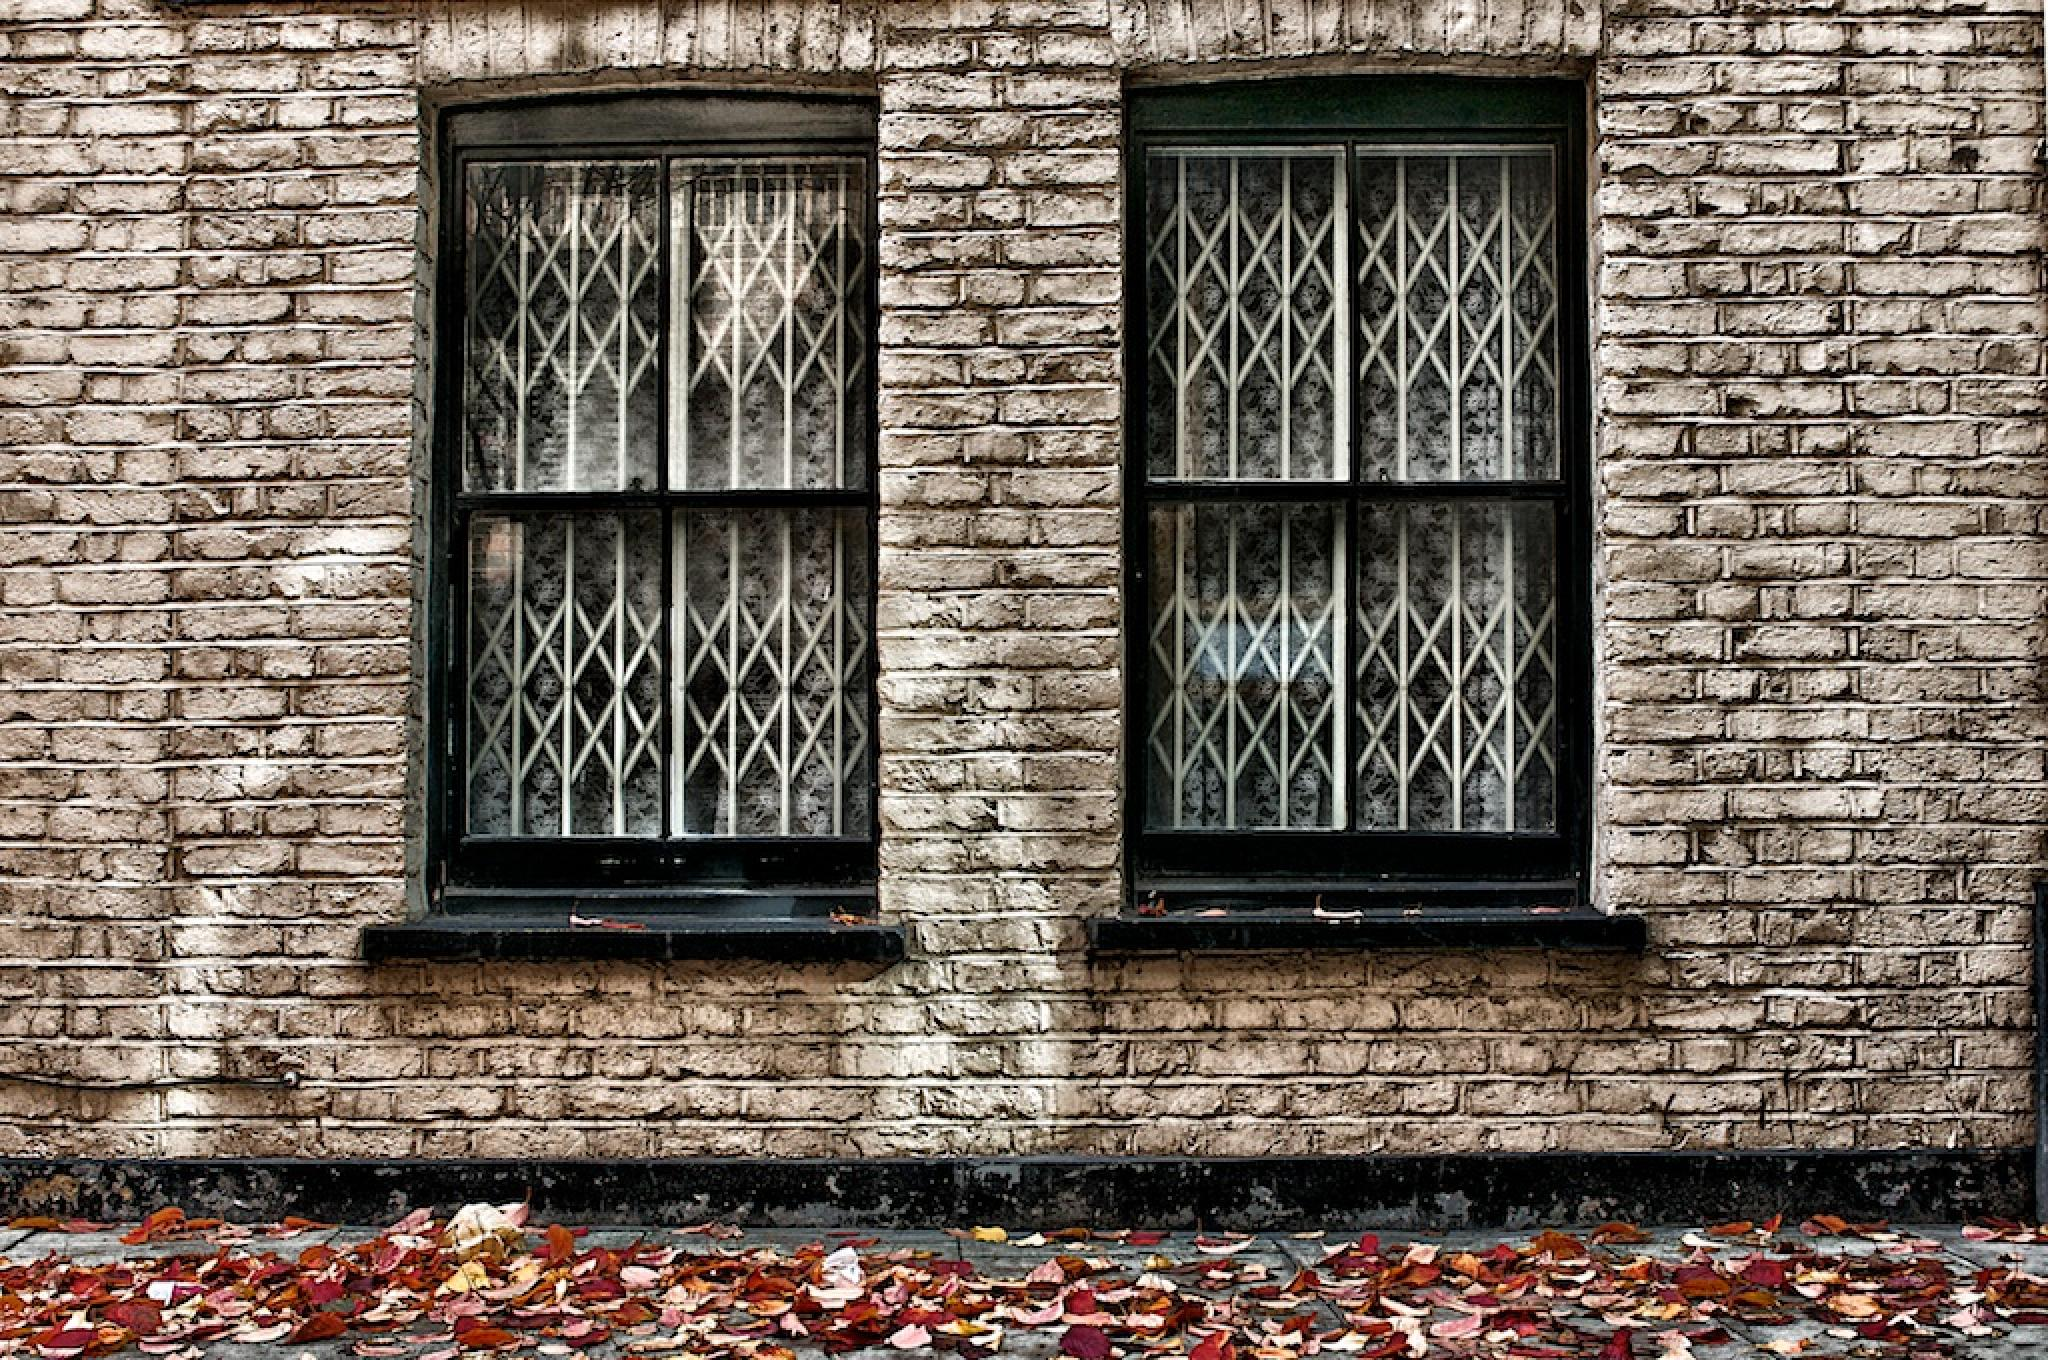 Autumn in London by Massimo Usai Photographer